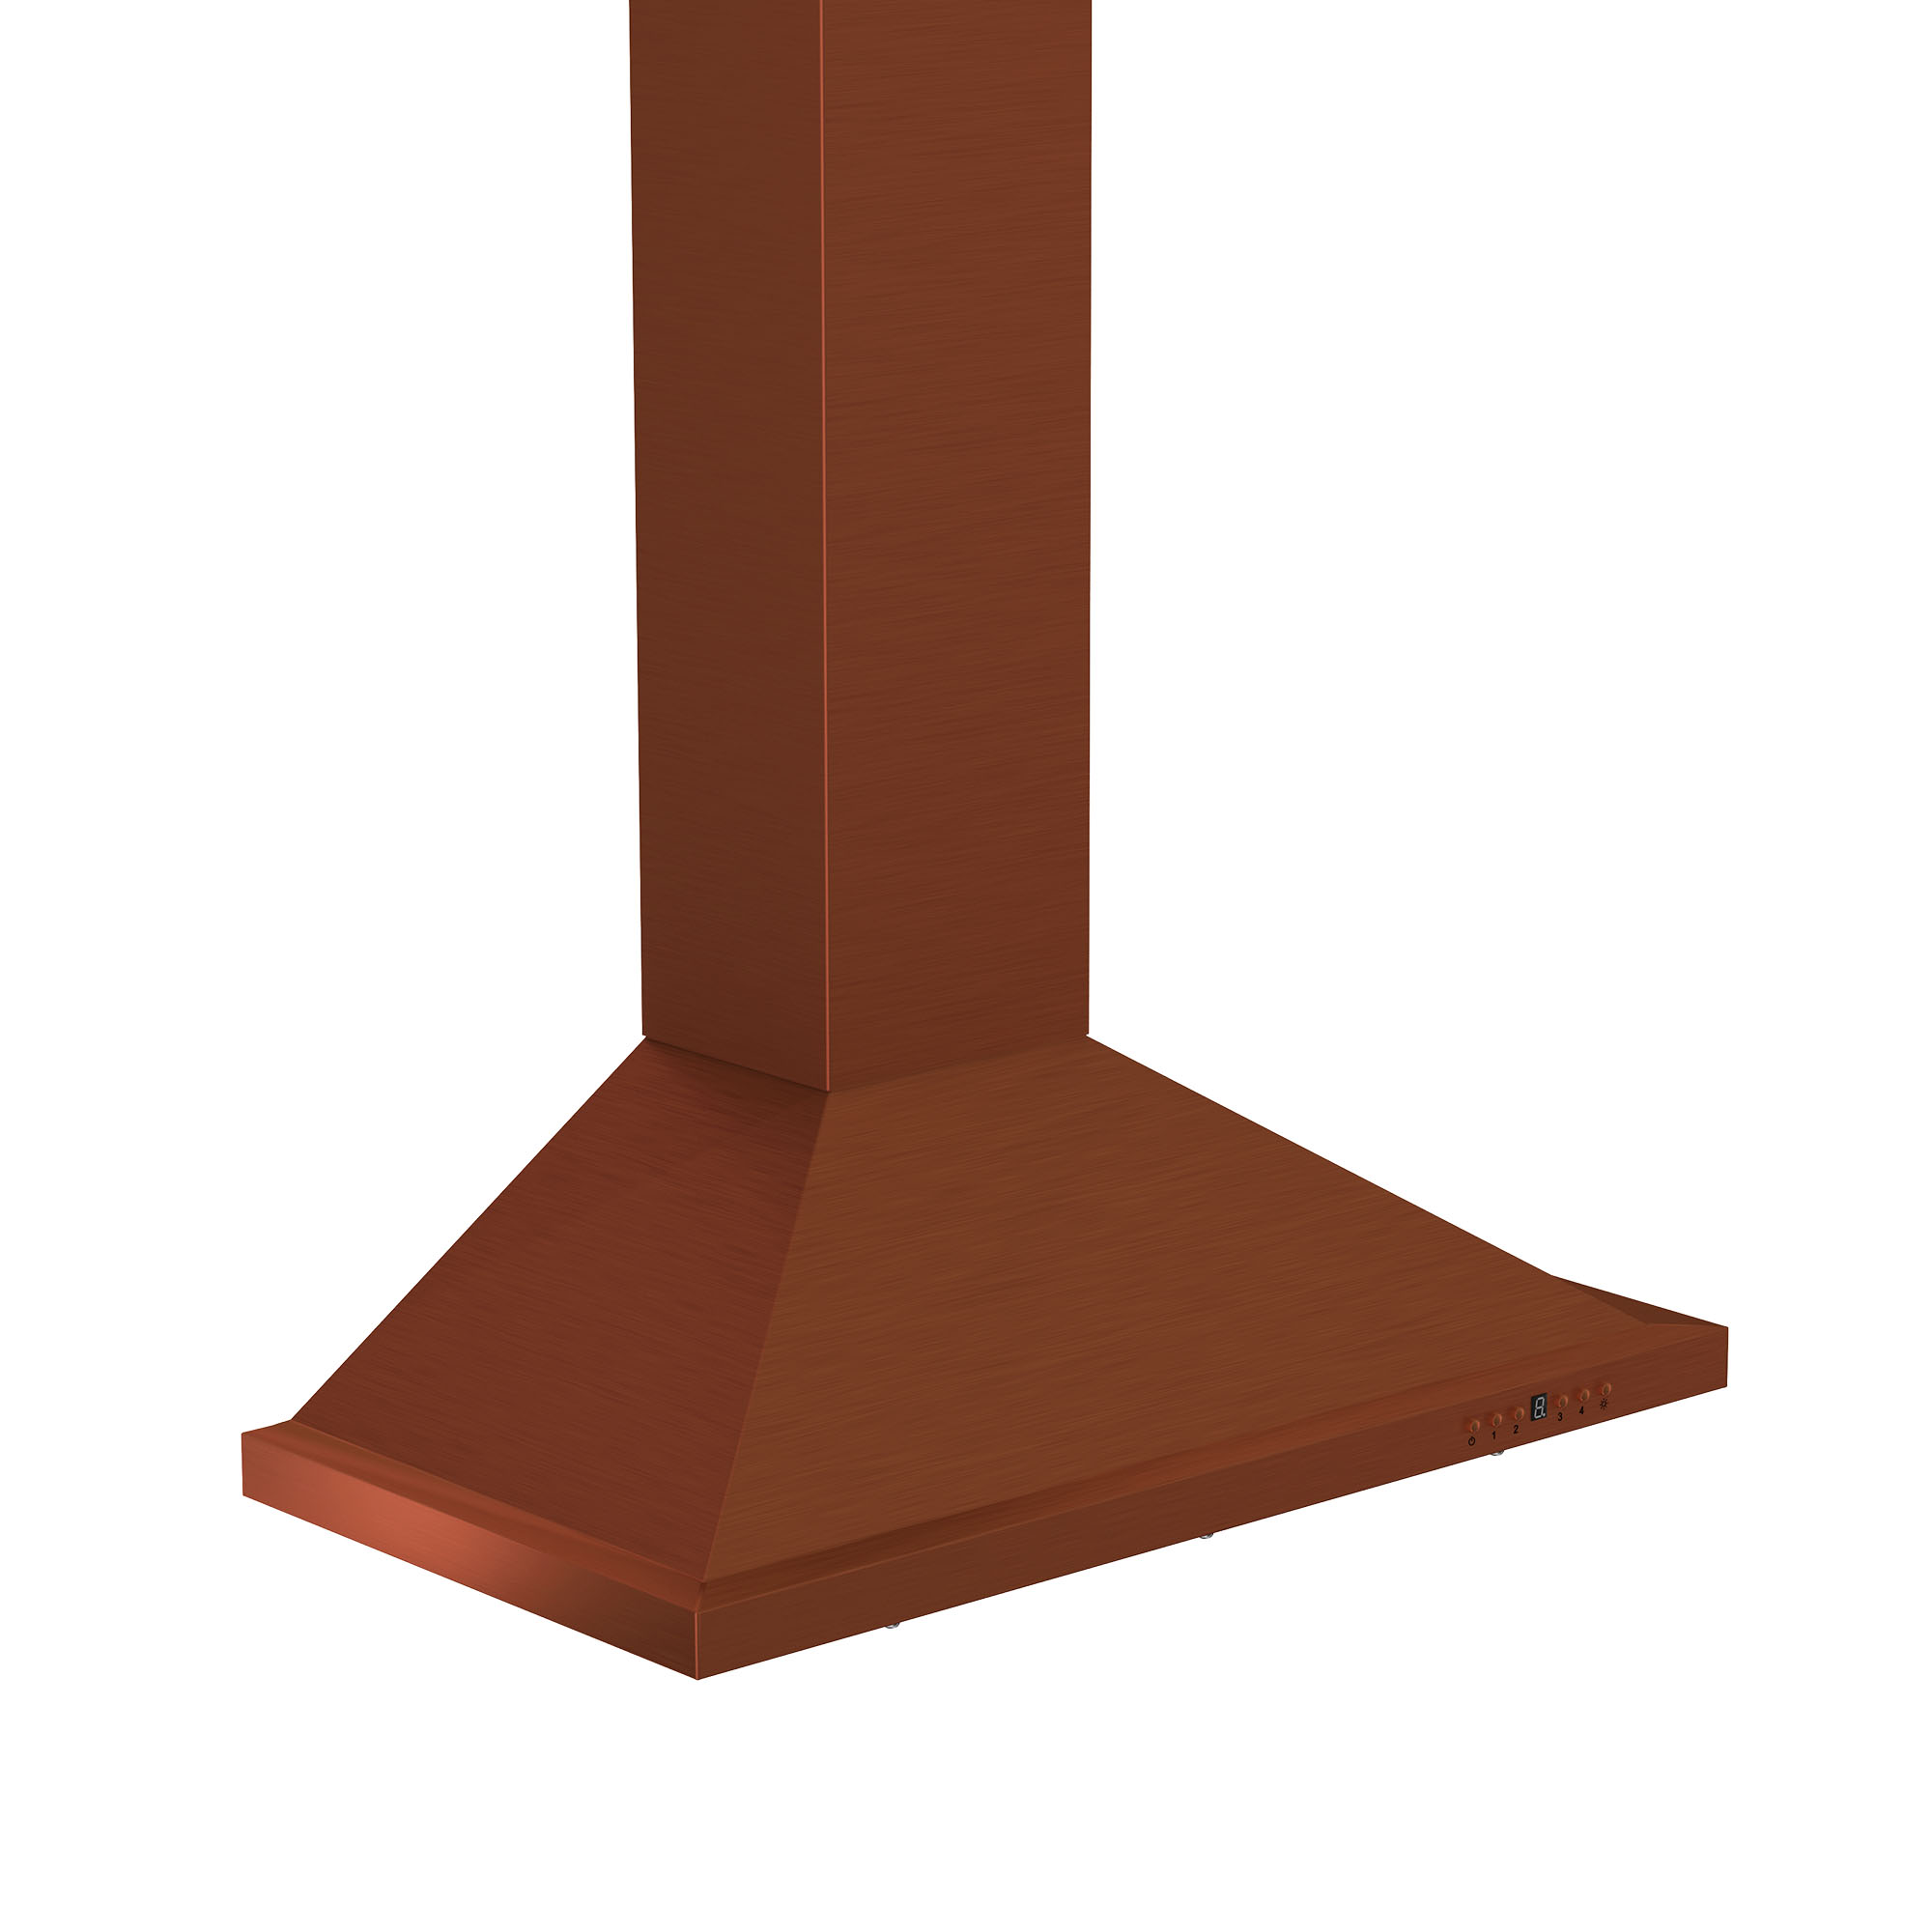 zline-copper-wall-mounted-range-hood-8KBC-top.jpg